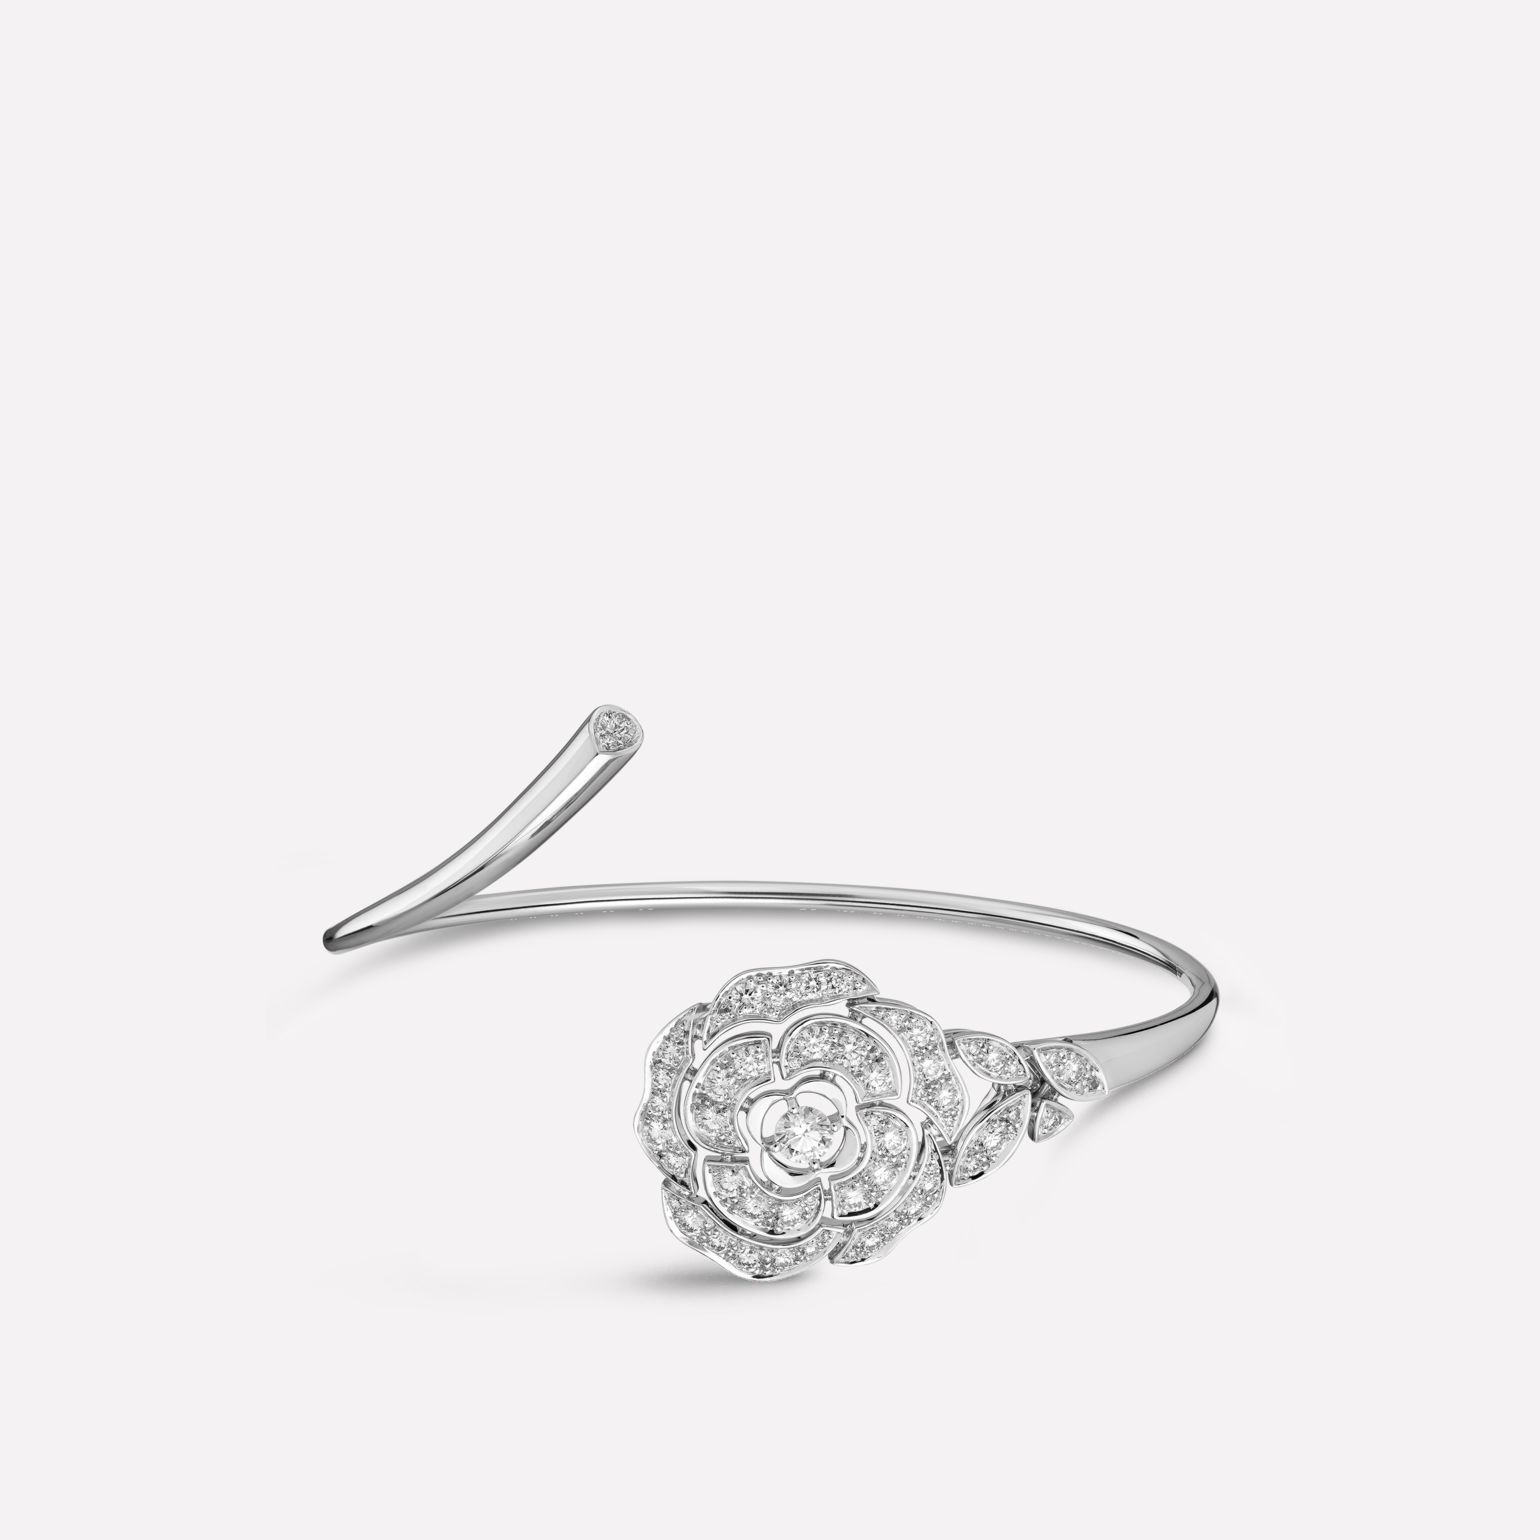 Camélia bracelet Bouton de Camélia bracelet in 18K white gold and diamonds with one center diamond